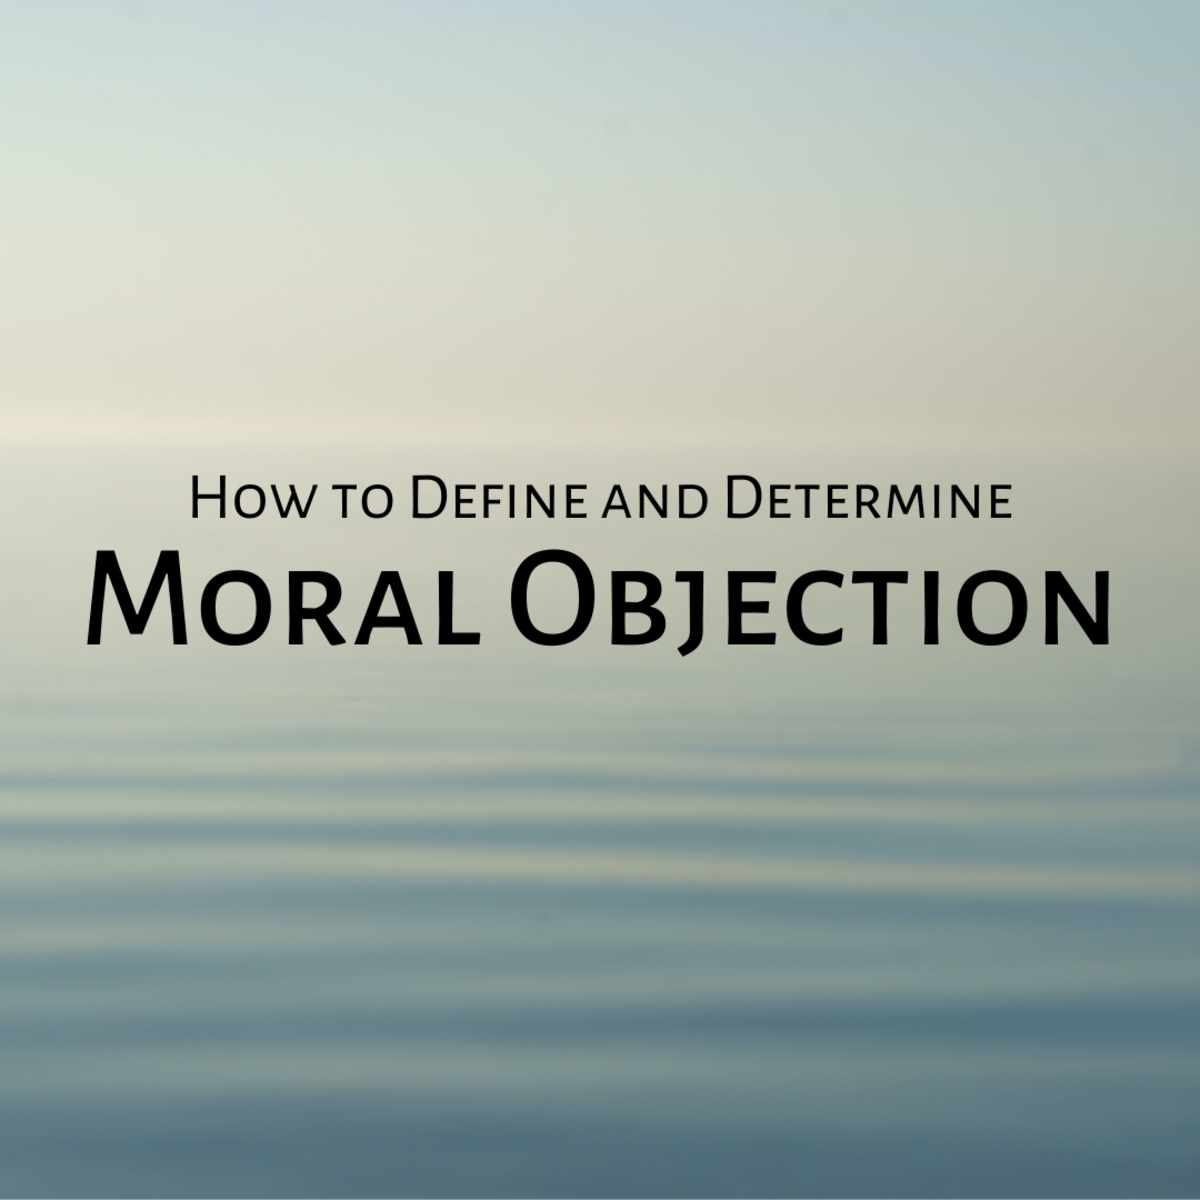 What Is a Moral Objection?